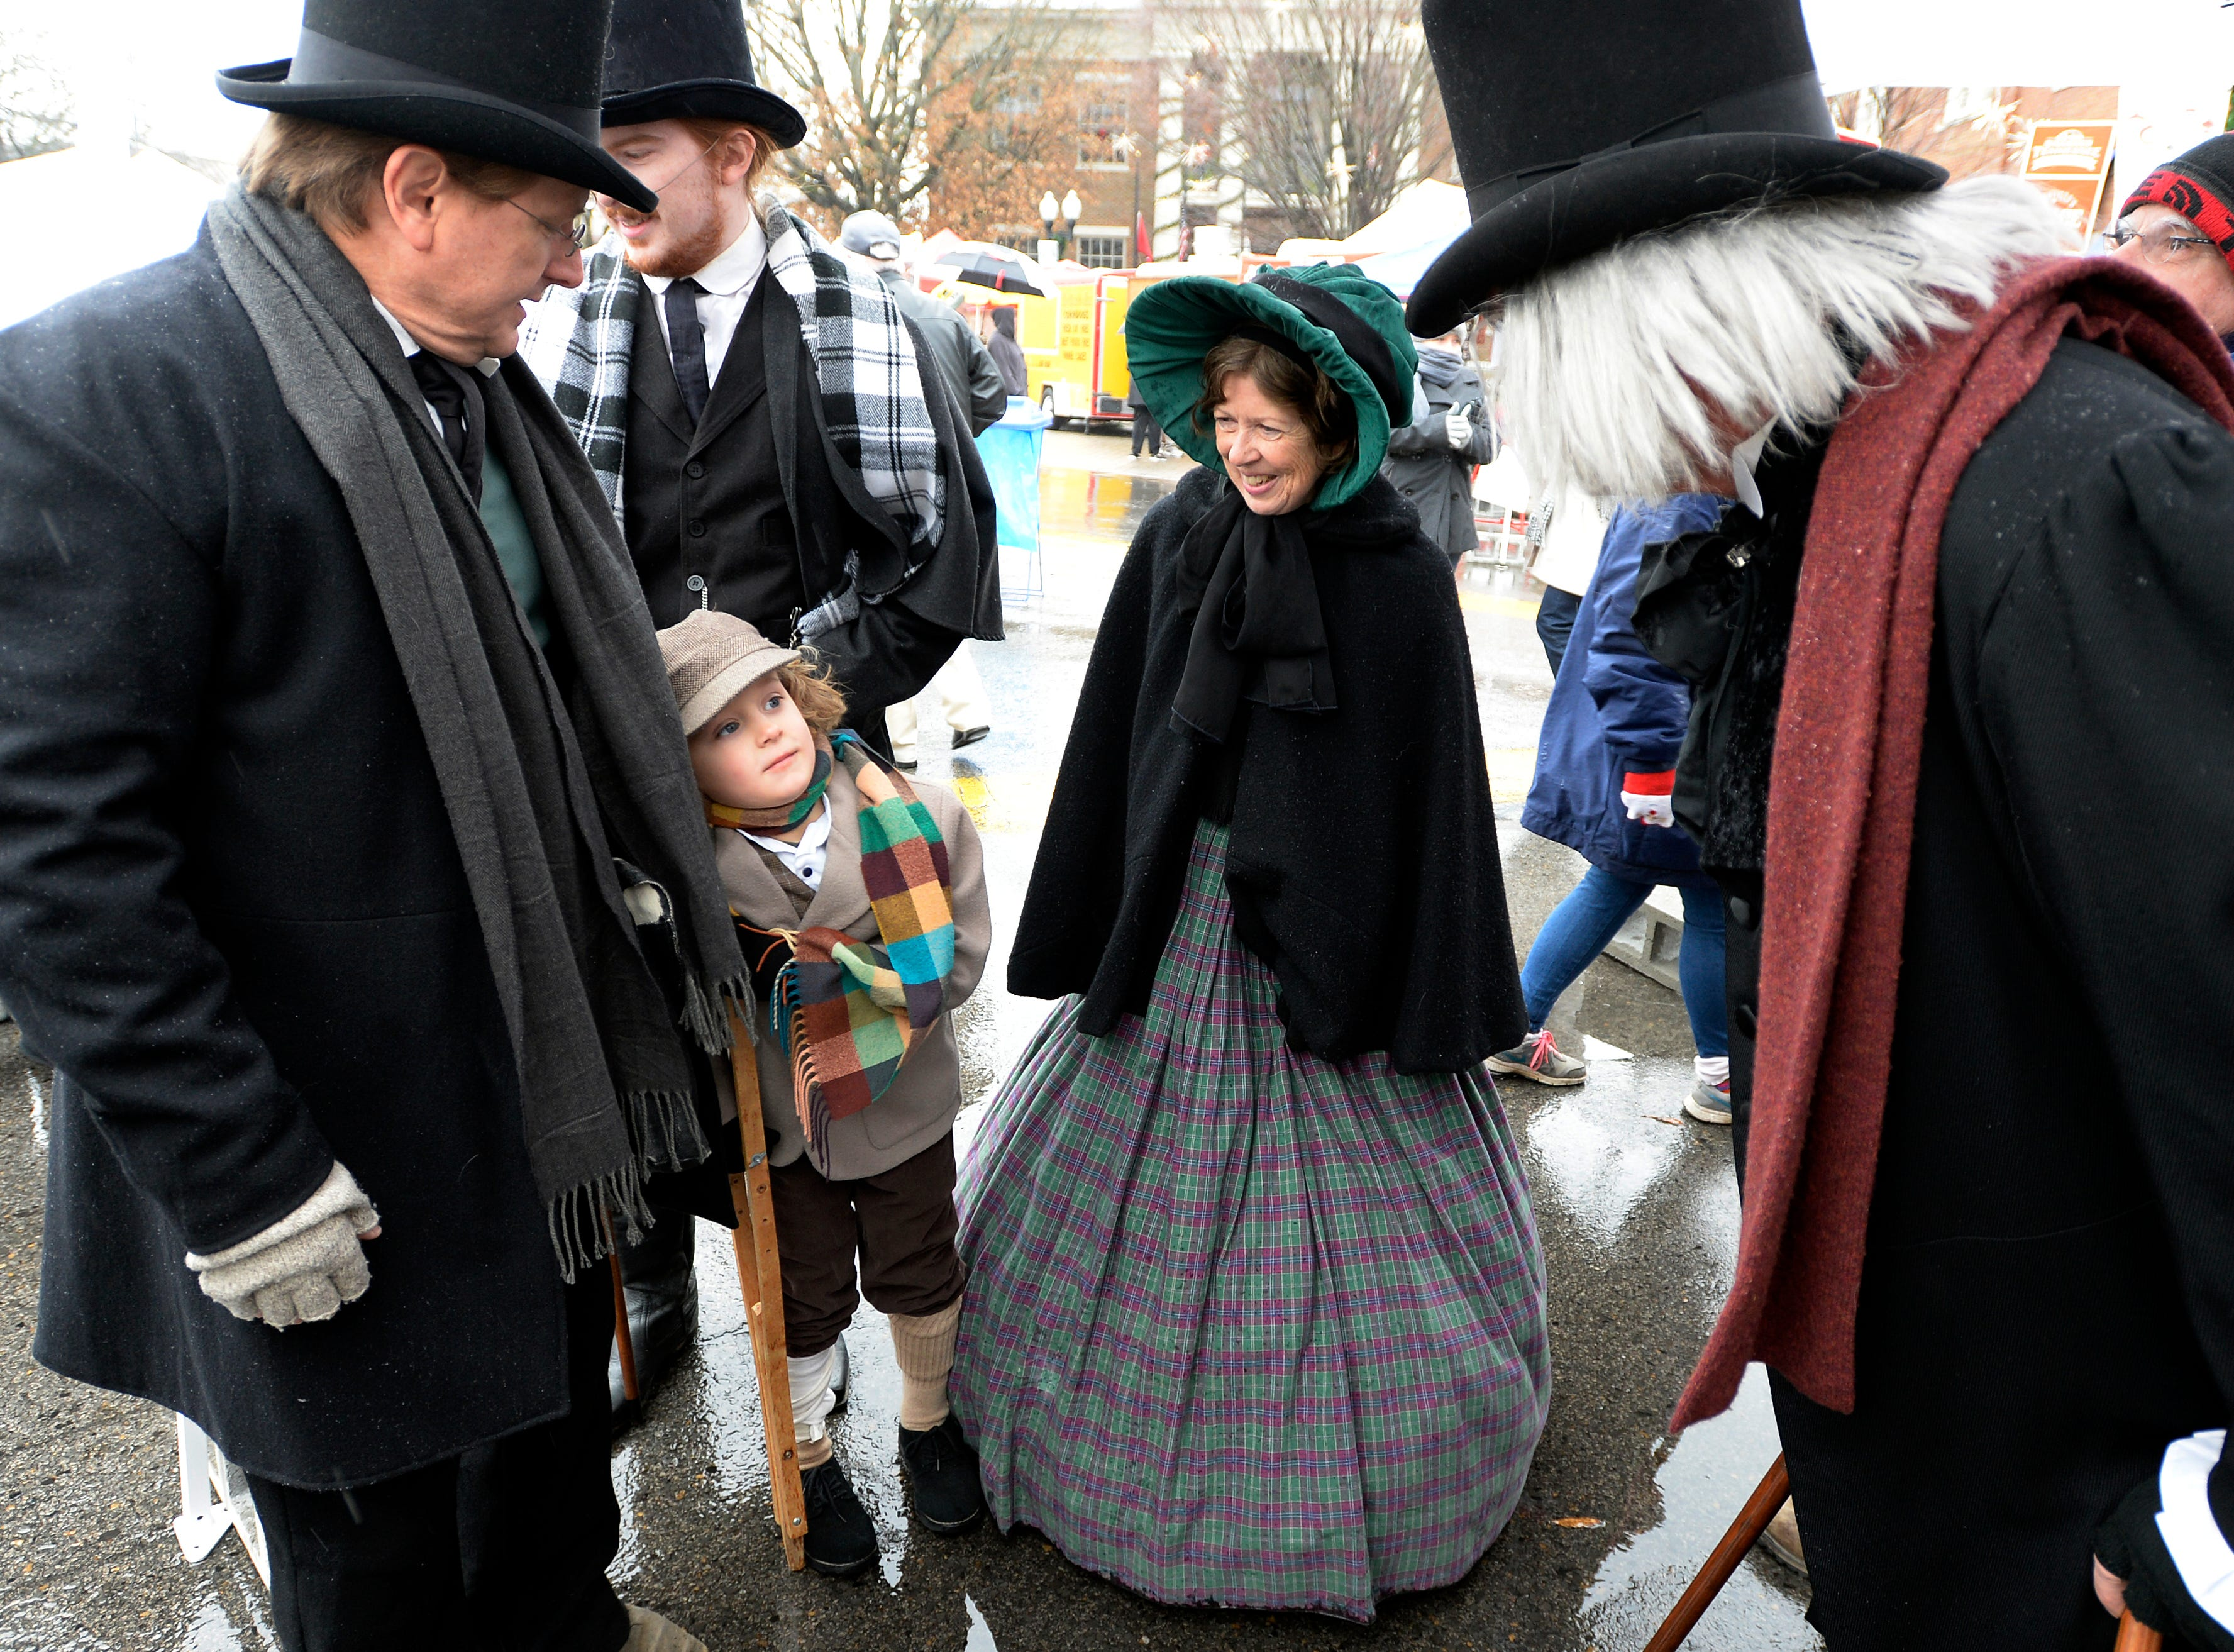 Alan Corry, left, his wife, Carla, and Andrew Nixon, 6, as Oliver Twist, spend time during the Dickens of a Christmas on Saturday, Dec. 8, 2018, in Franklin, Tenn.